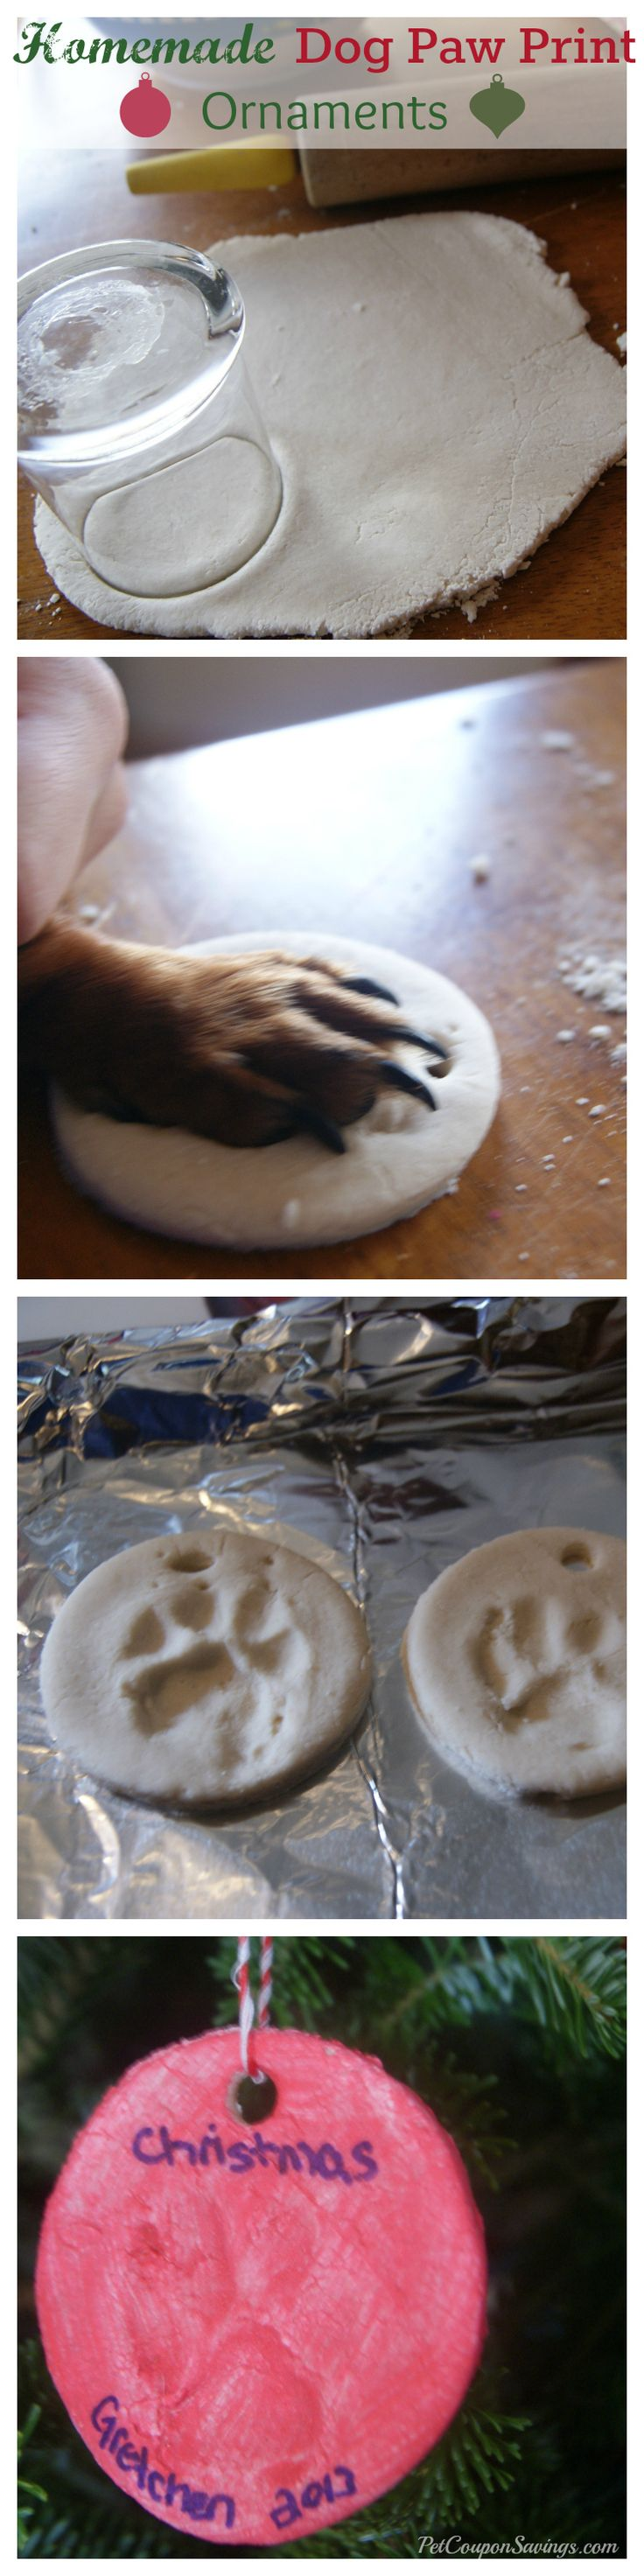 Homemade Dog Paw Print Ornaments.